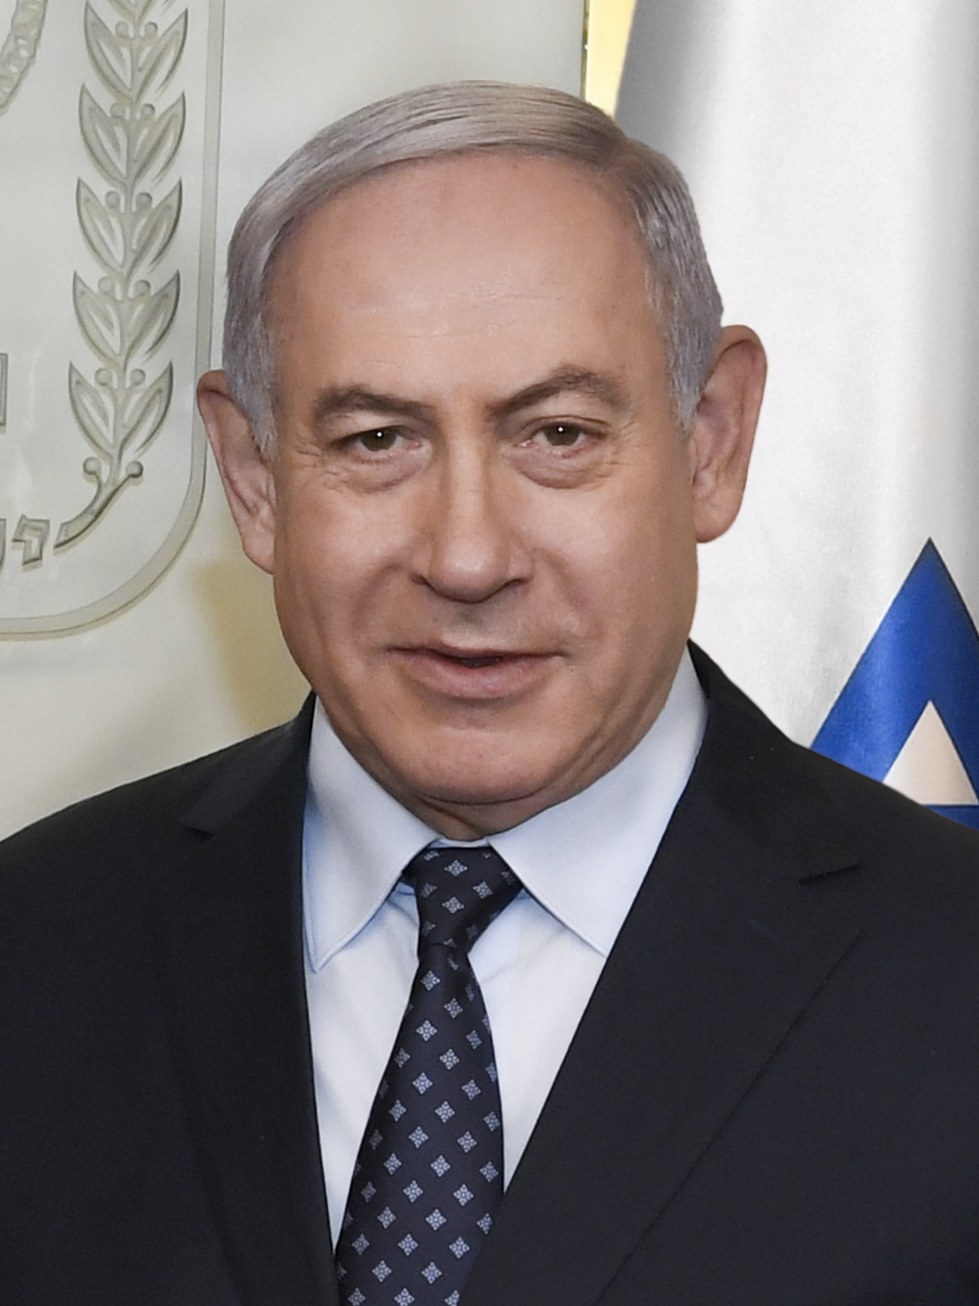 The 71-year old son of father Benzion Netanyahu and mother Zila Netanyahu Benjamin Netanyahu in 2021 photo. Benjamin Netanyahu earned a  million dollar salary - leaving the net worth at 11 million in 2021